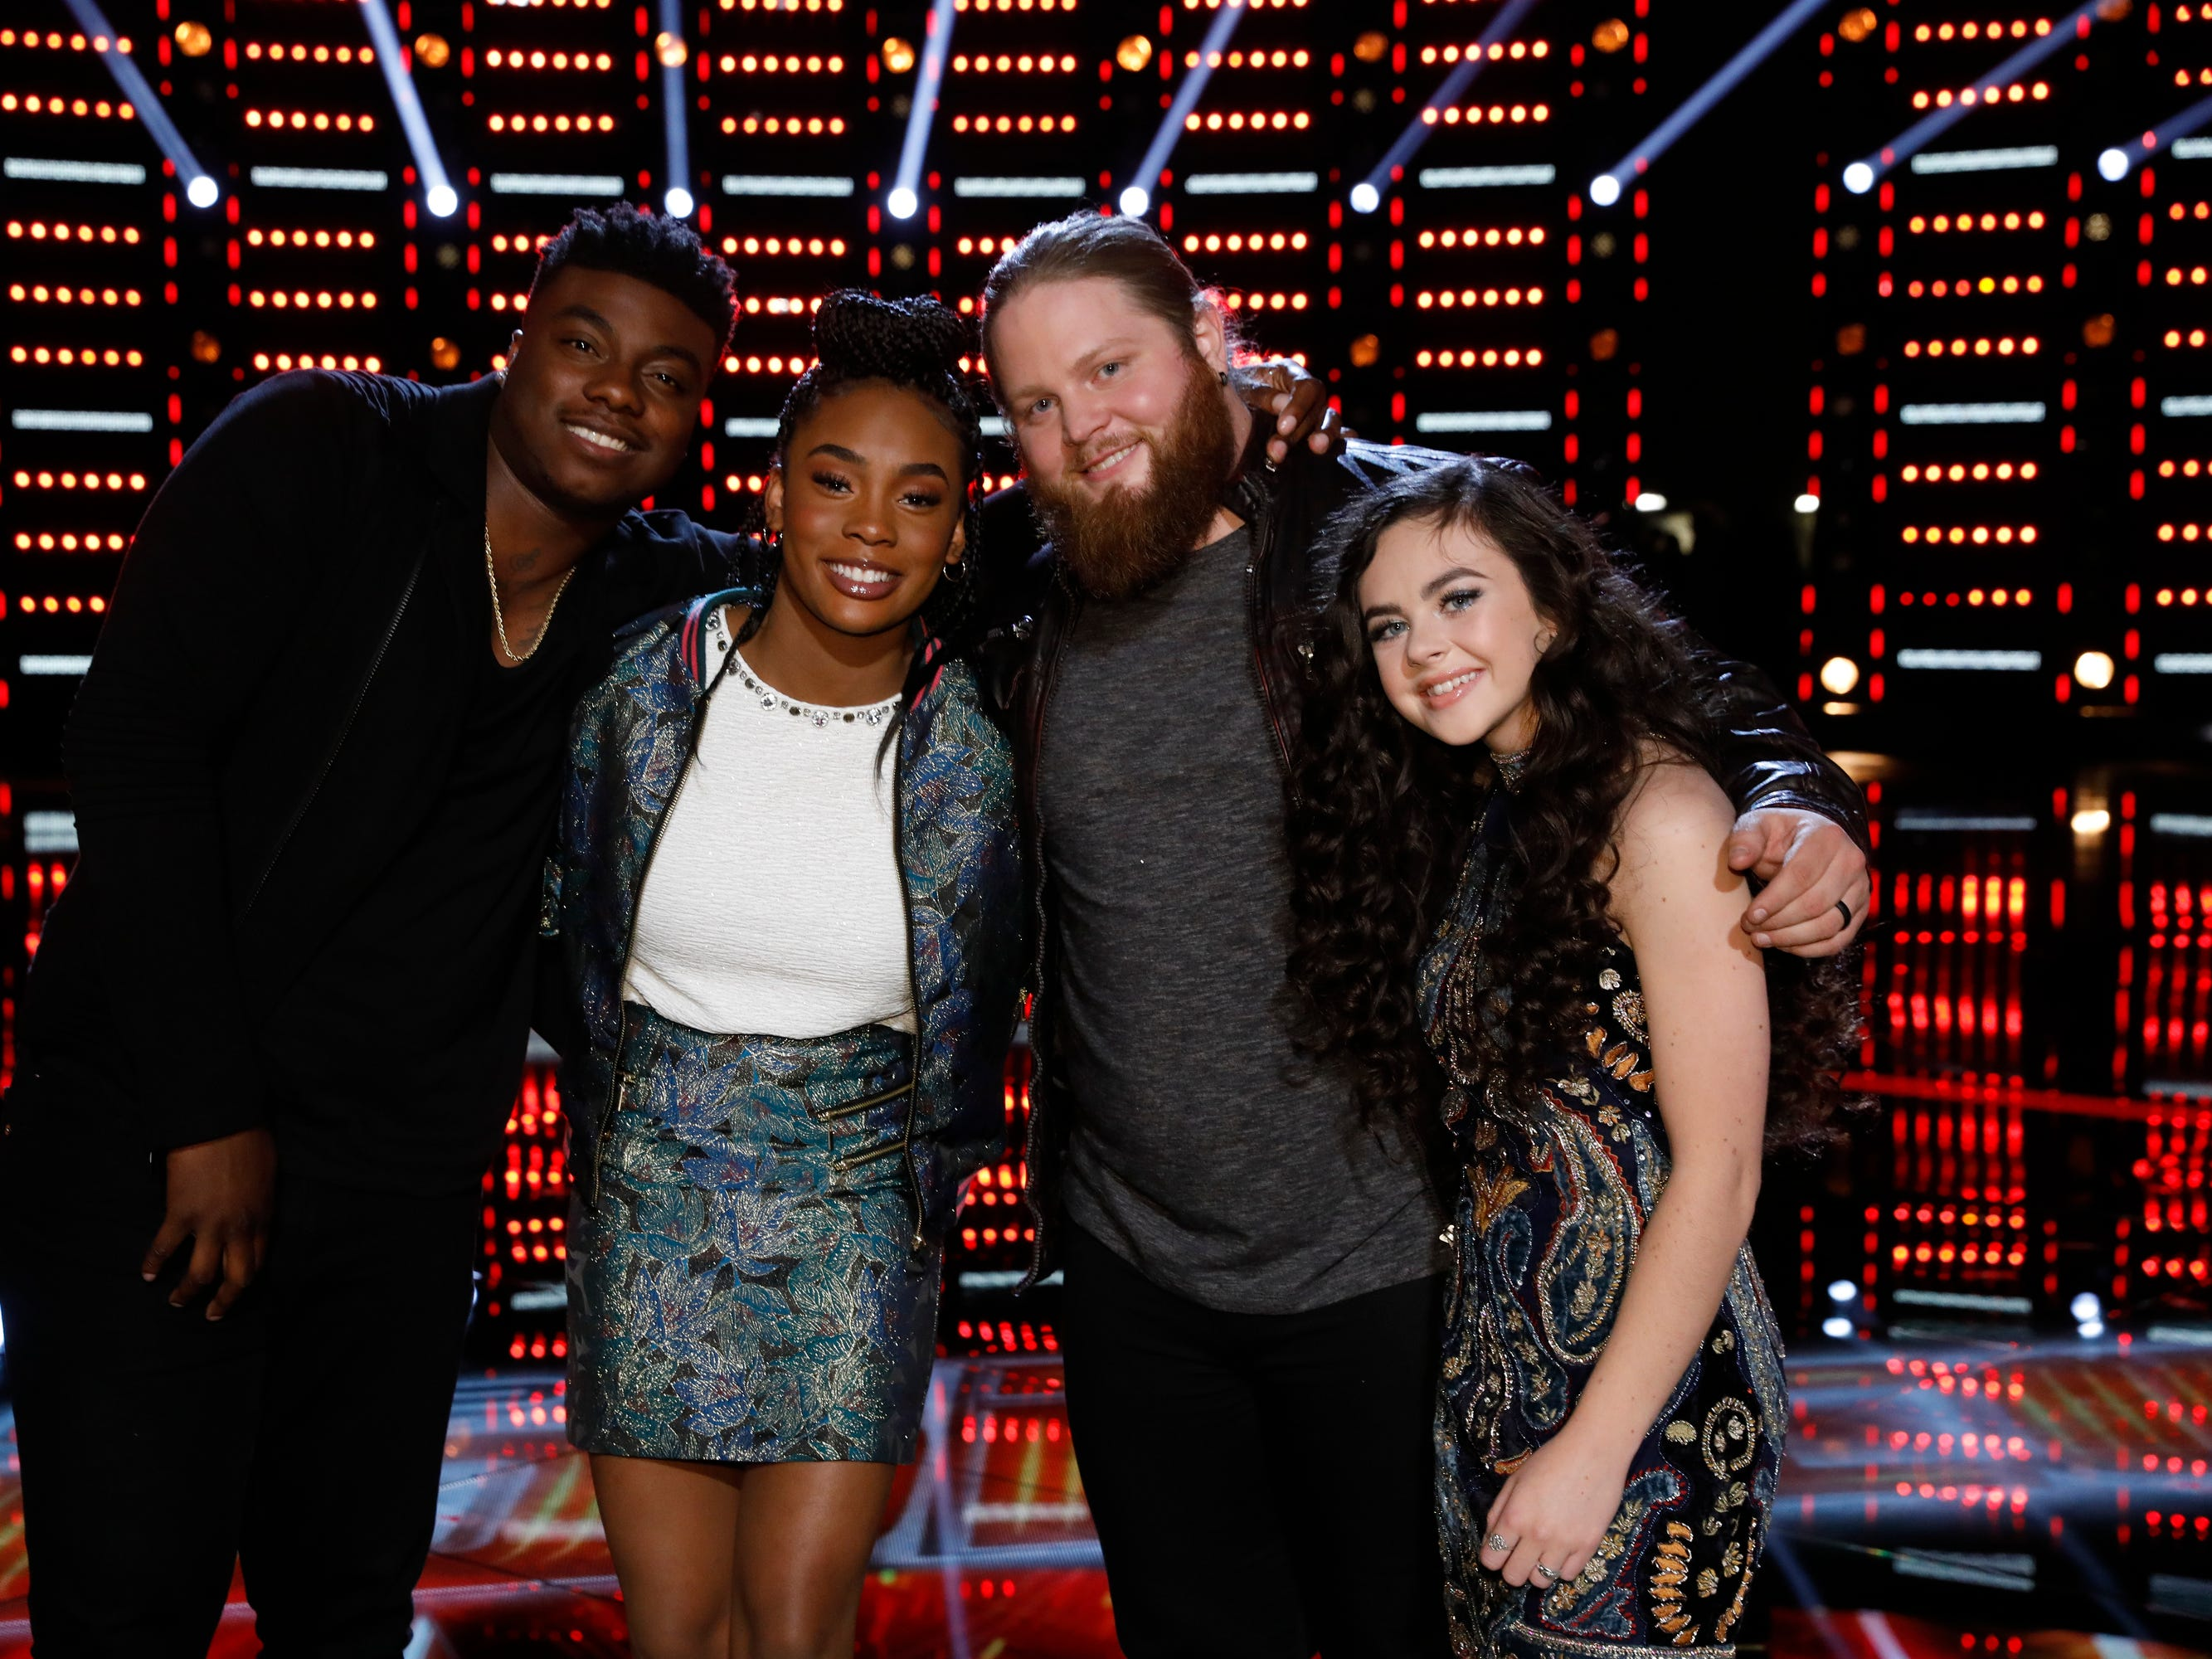 """Monday night was do-or-die time on """"The Voice"""" as the finalists made their case for being named winner.  The last four left standing? Kirk Jay (Team Blake), Kennedy Holmes (Team JHud), Chris Kroeze (Team Blake) and Chevel Shepherd (Team Kelly). The Season 15 champ will be named Tuesday night."""